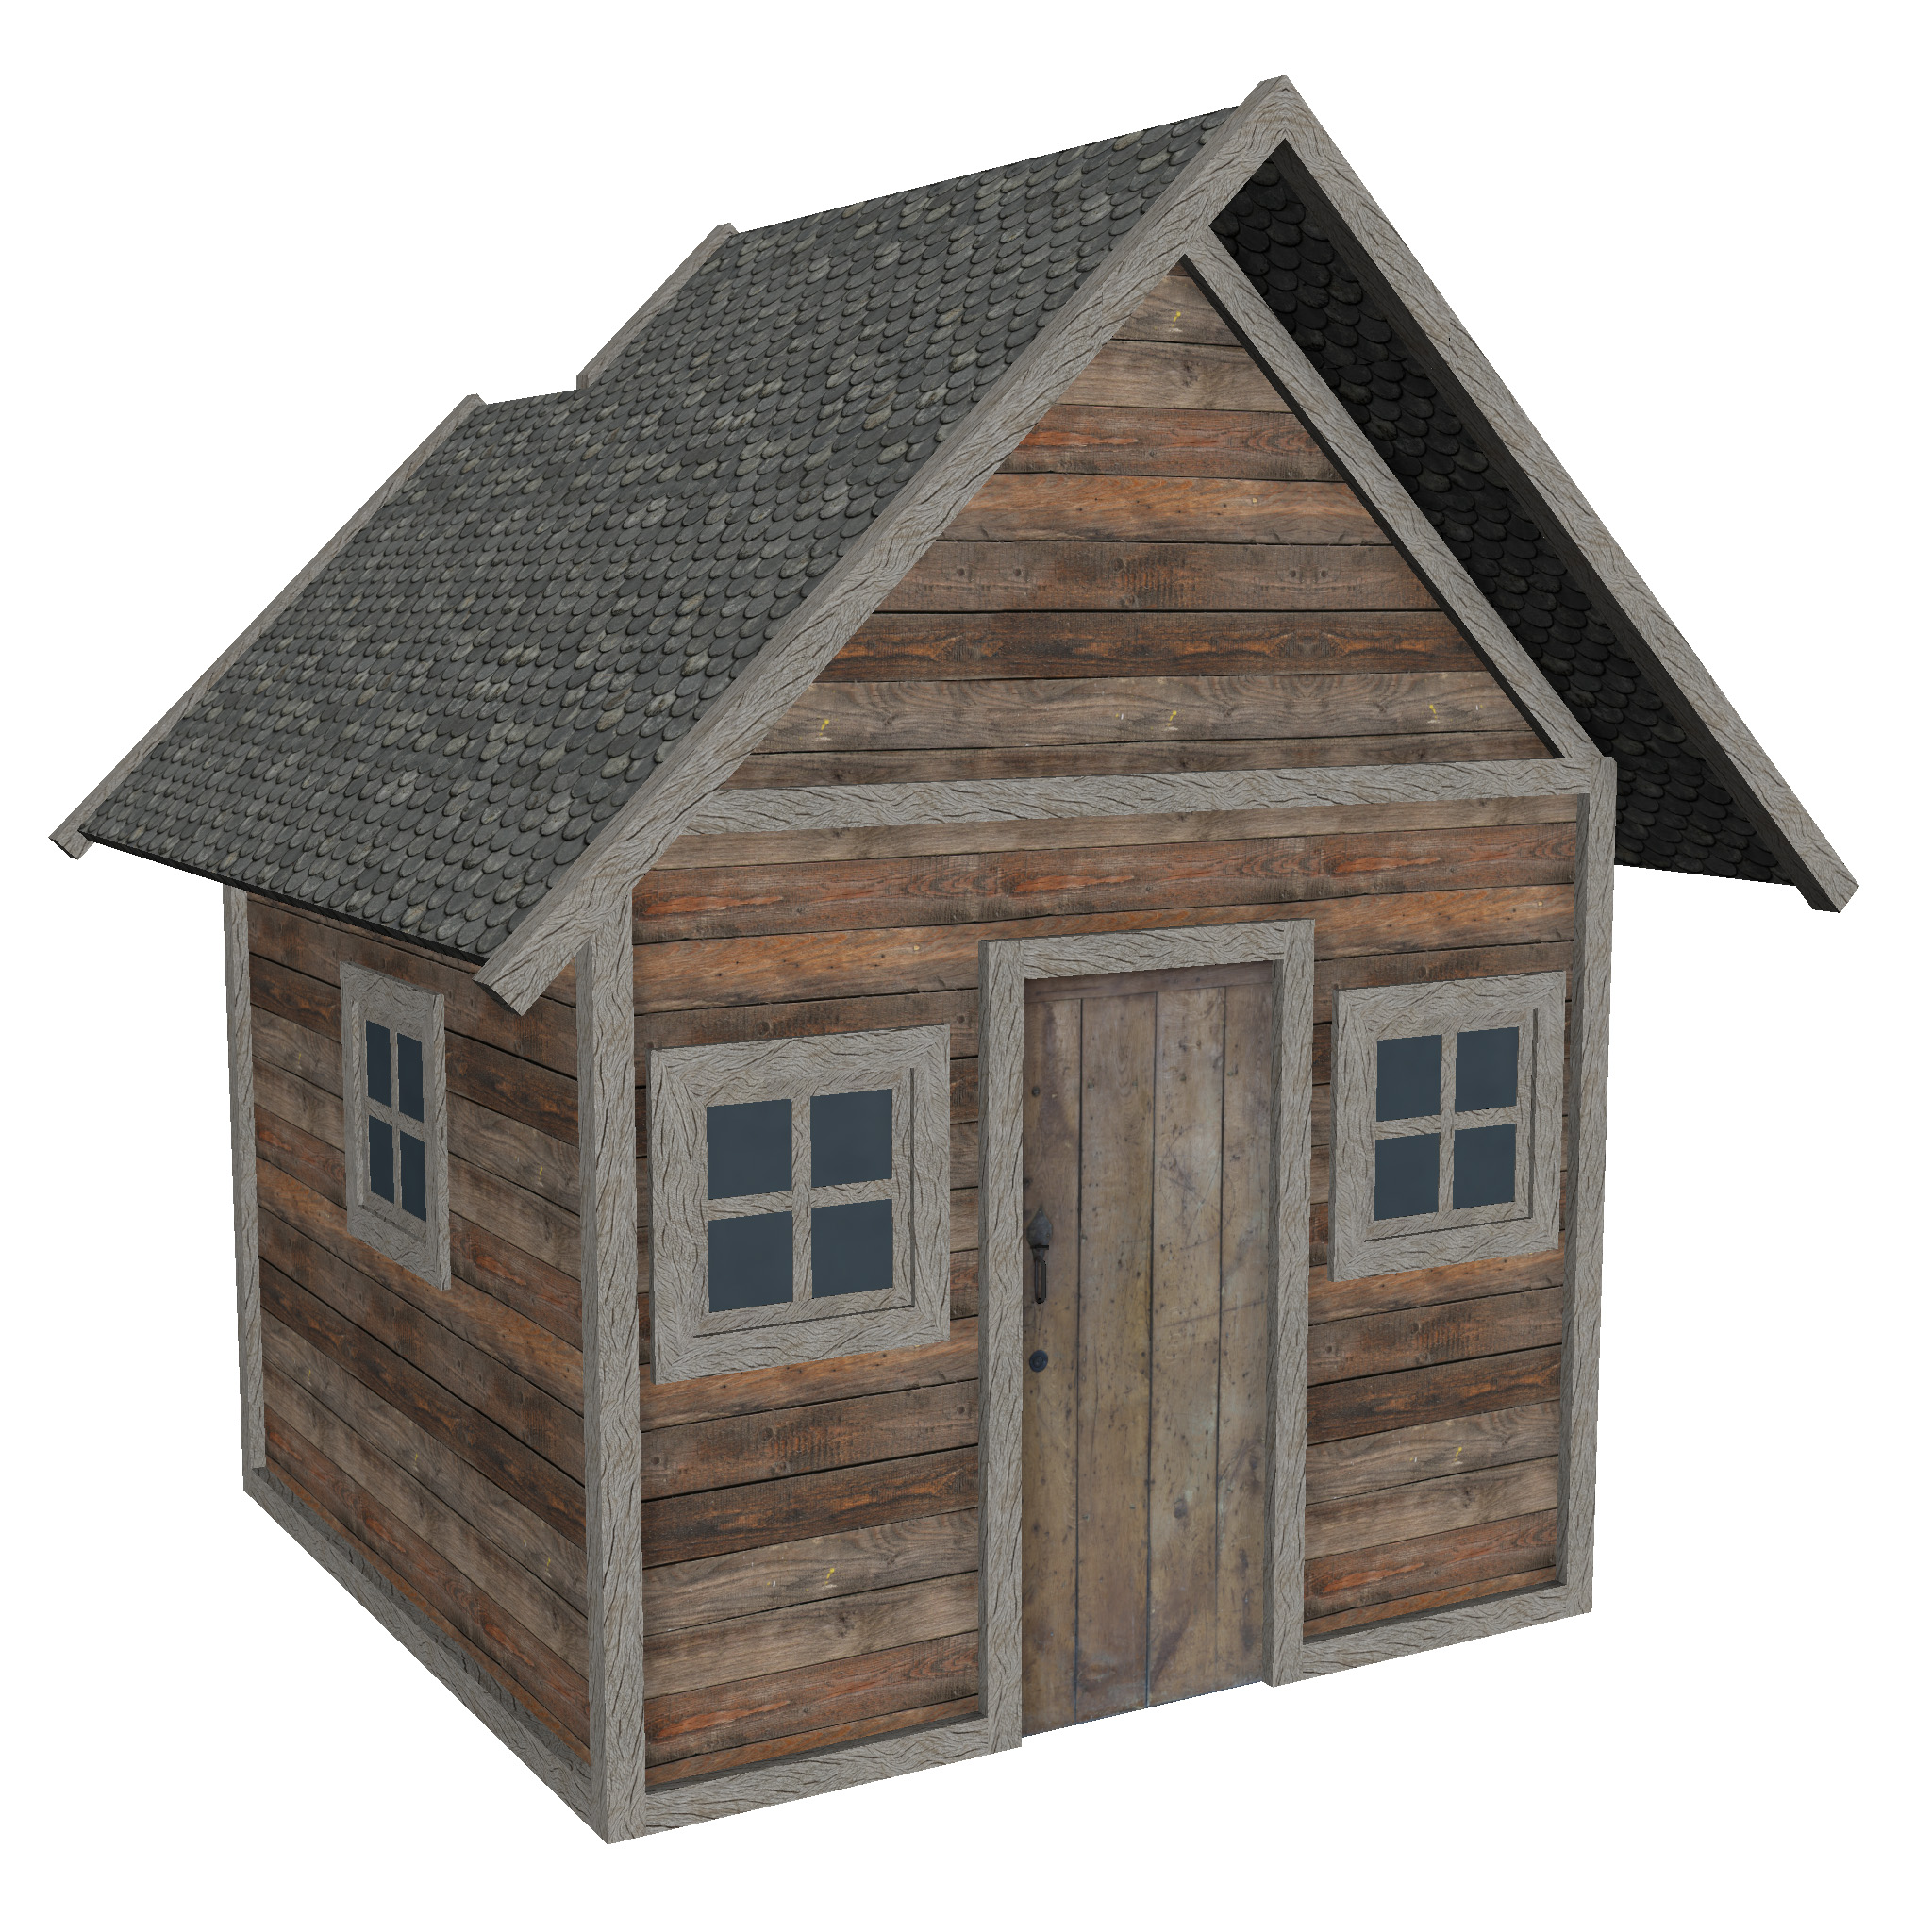 modular wood house set 3d model fbx ma mb 271447